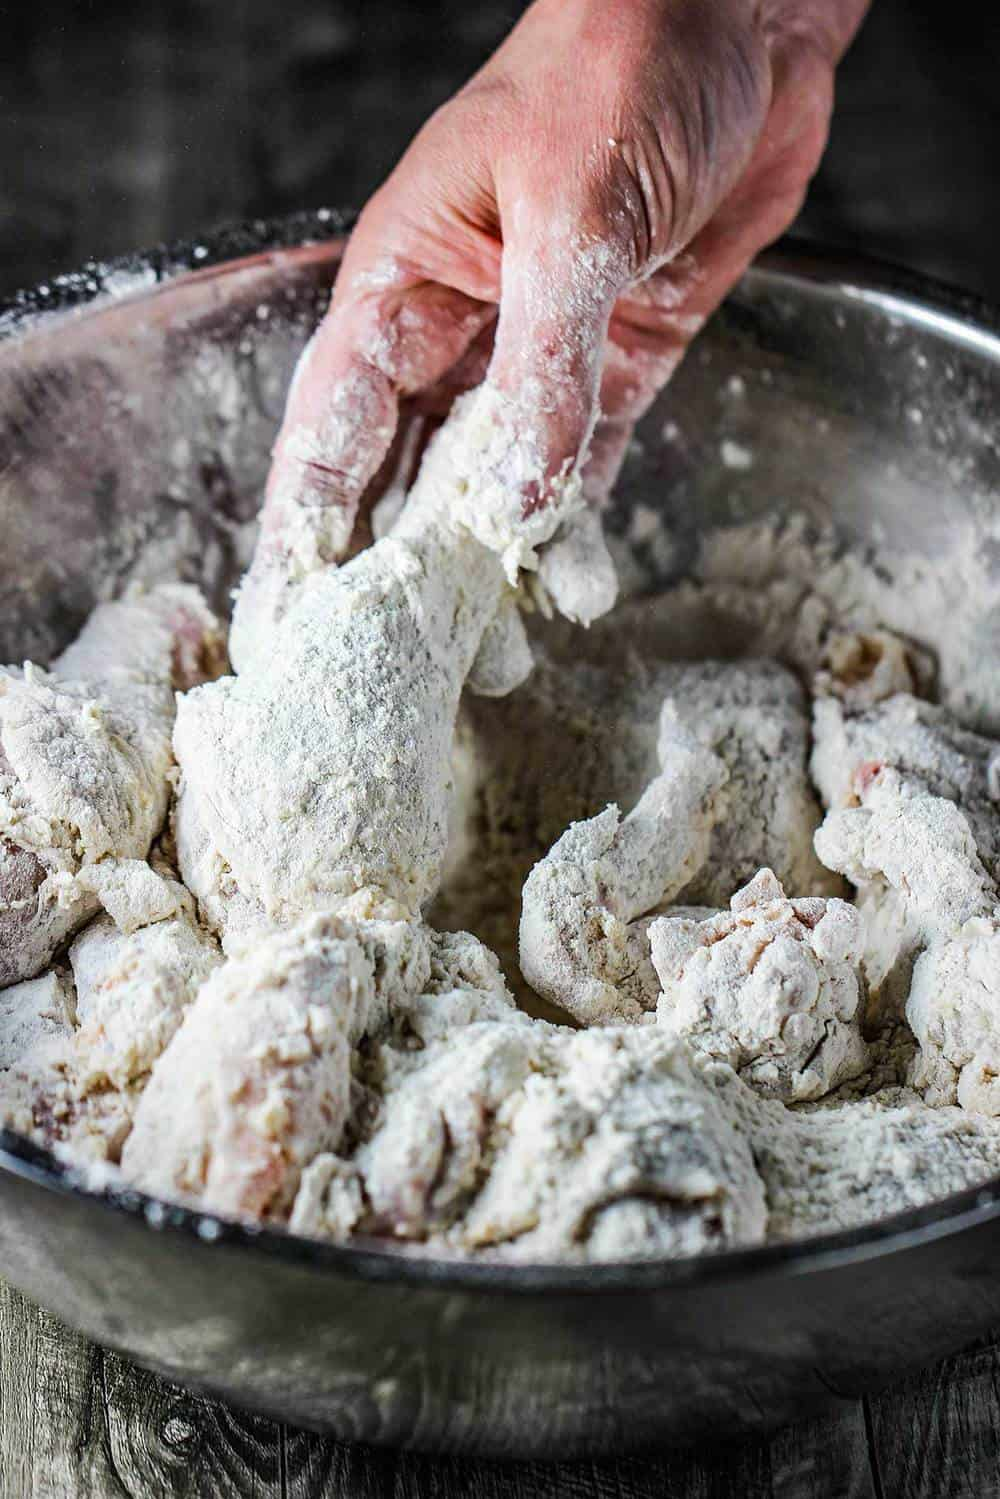 A hand hold a piece of chicken dredged in flour for fried chicken